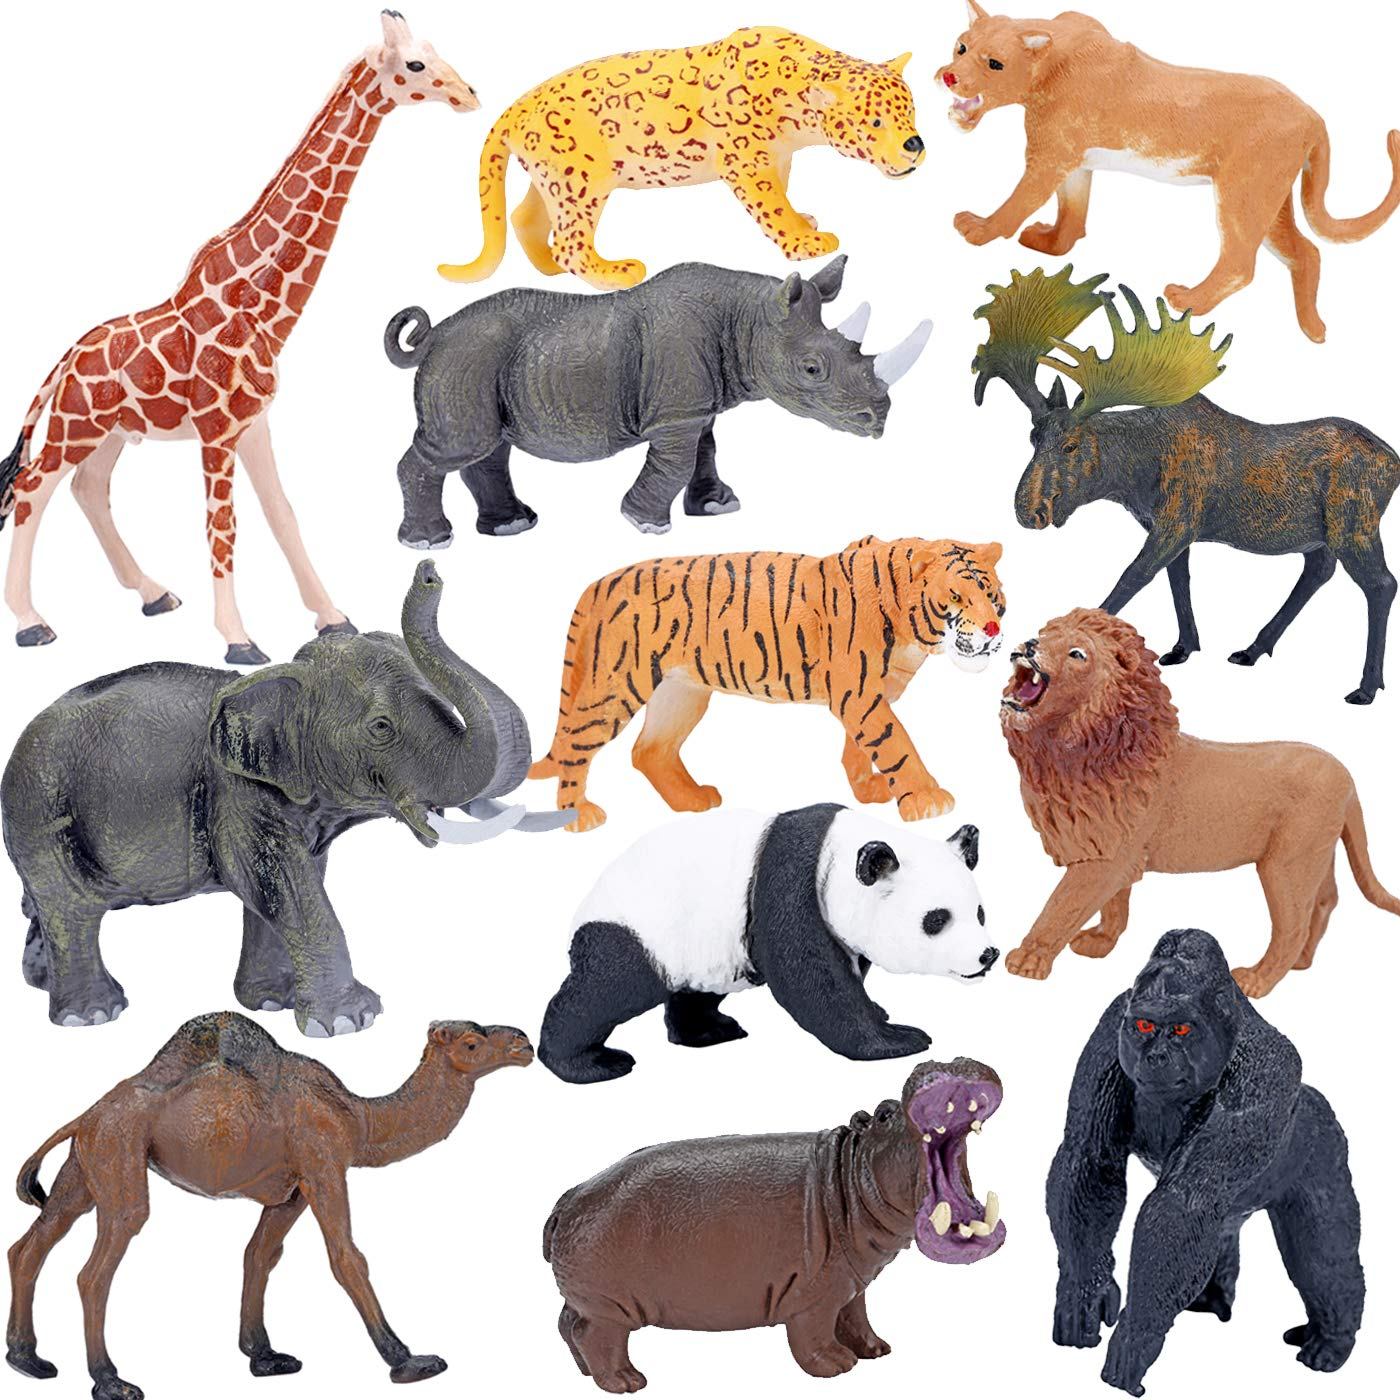 Pack of Plastic Zoo Wild Animals Insects Model Toy Kids Education Model Figures